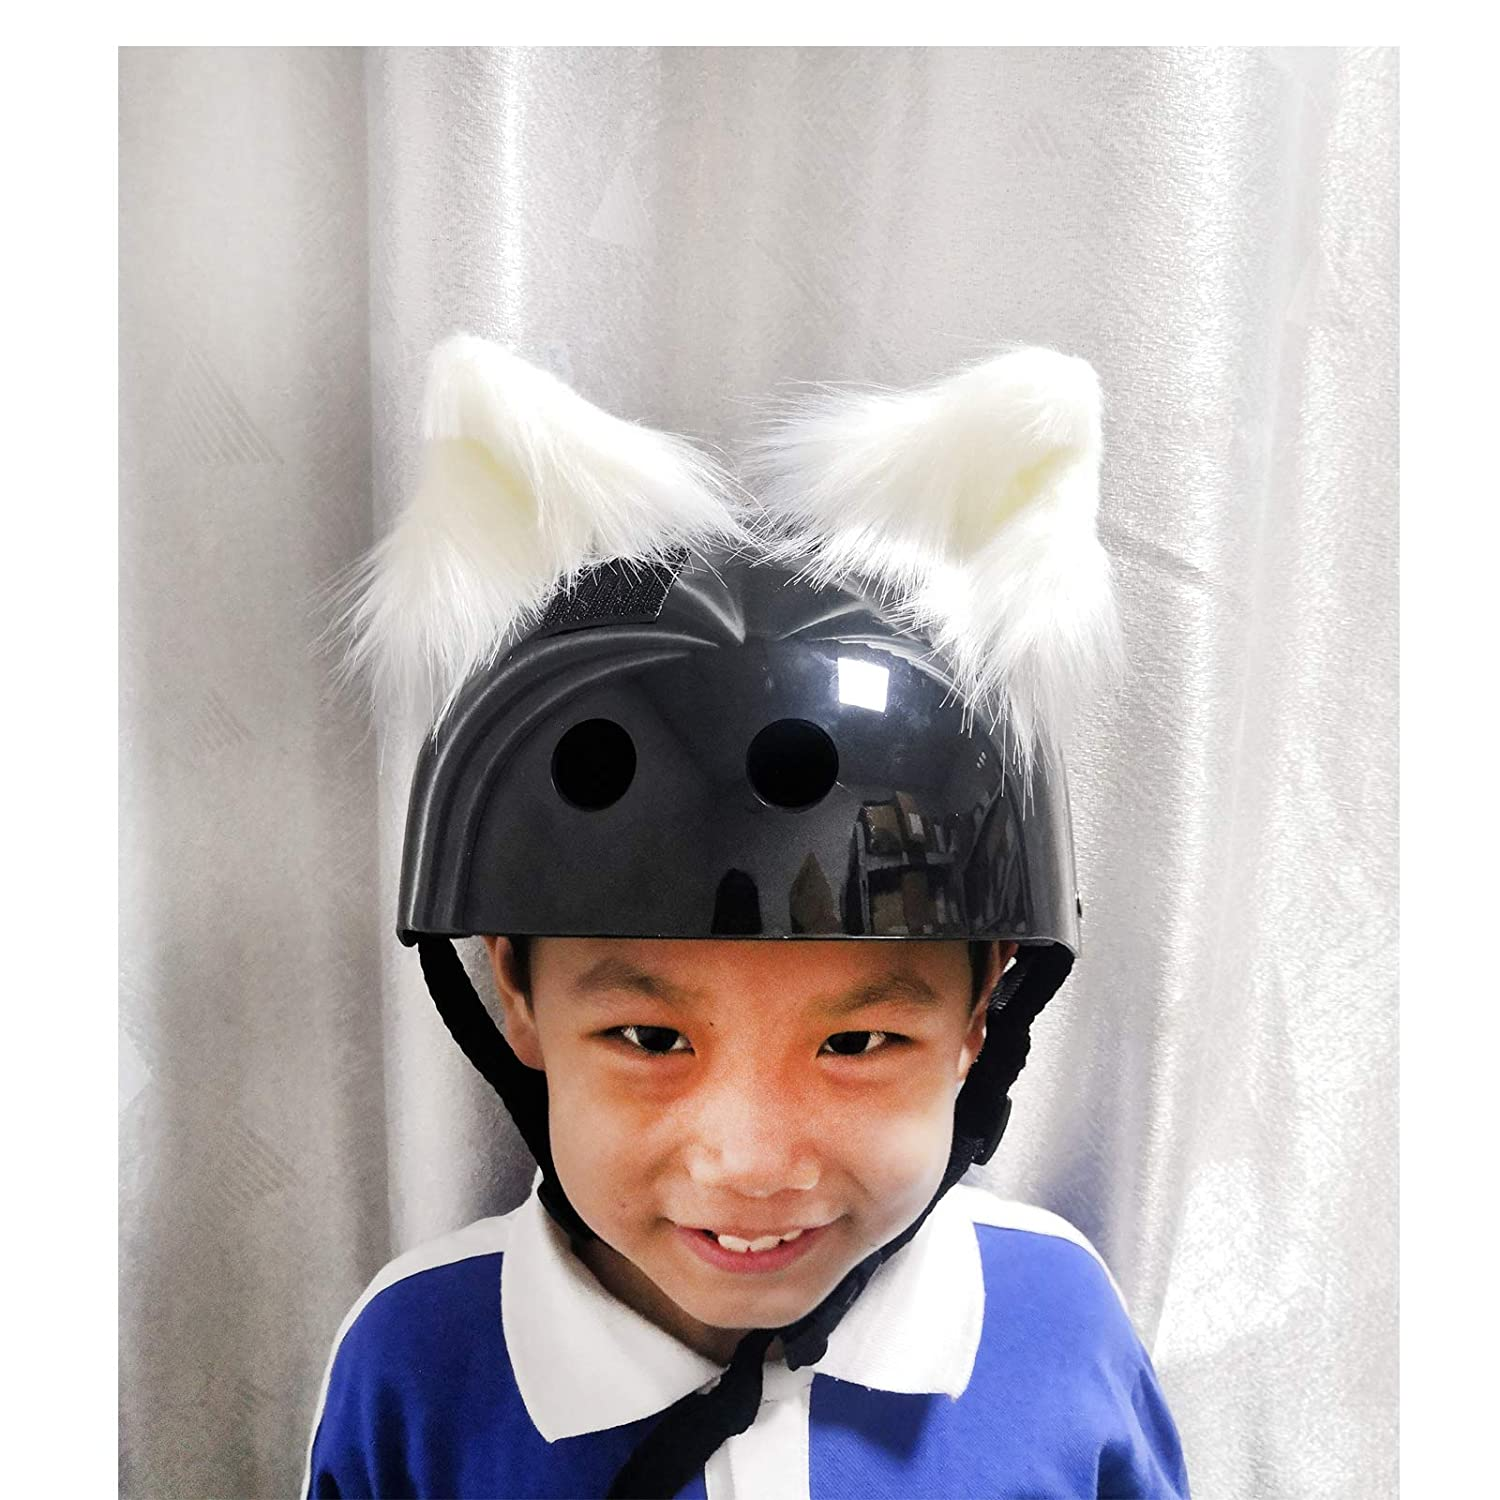 Hai Hong Helmet Cat Ears Crystal Helmet Accessories Decoration for Motorcycle,Snowboarding Biking Skiing Cycling Skating Costume Cosplay for Kids and Adults 2PCS,White